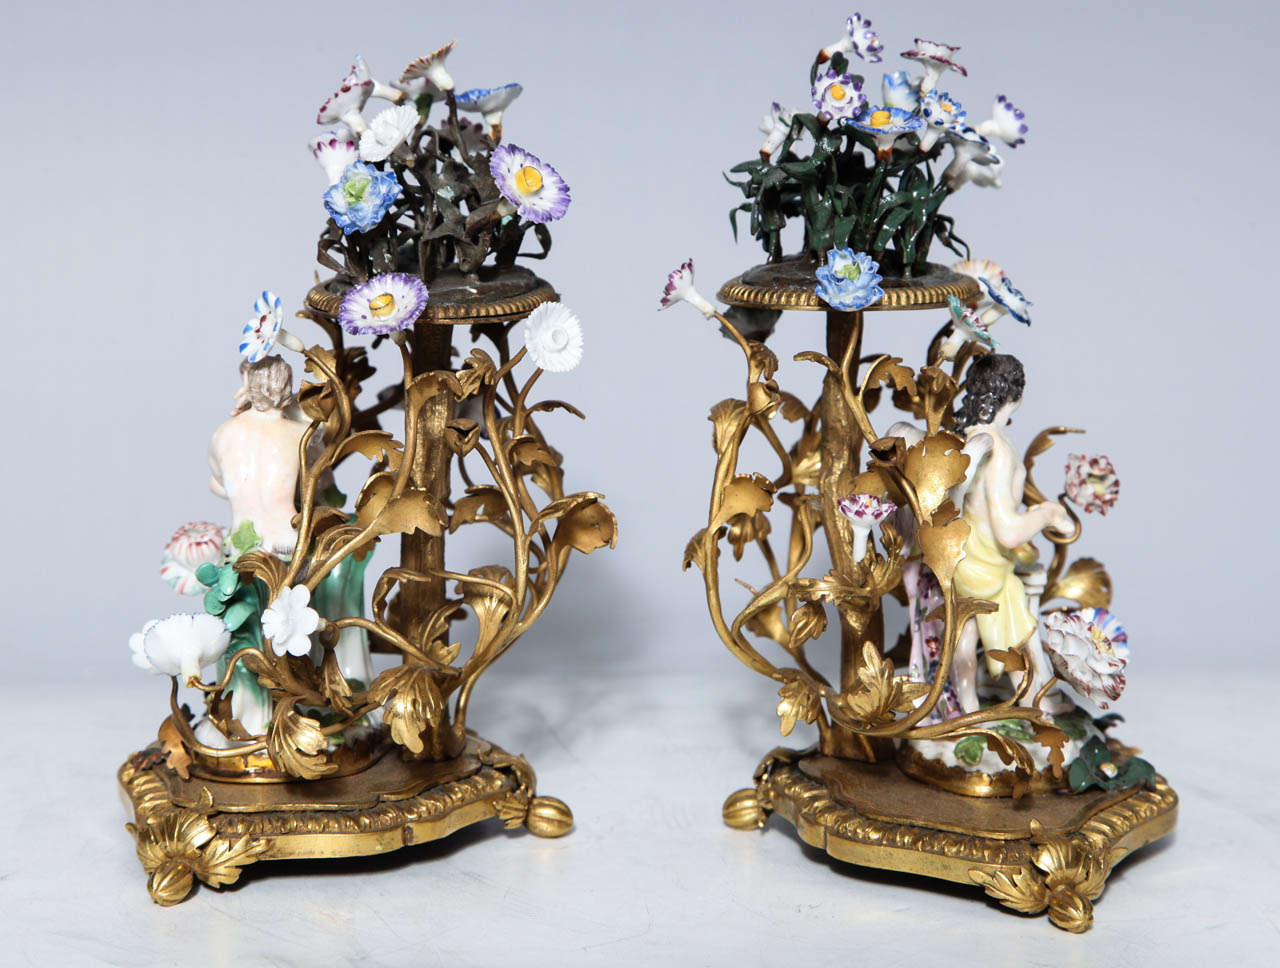 Pair of 18th Century Meissen Porcelain Groups in Dore Bronze Mounts, circa 1770 For Sale 3